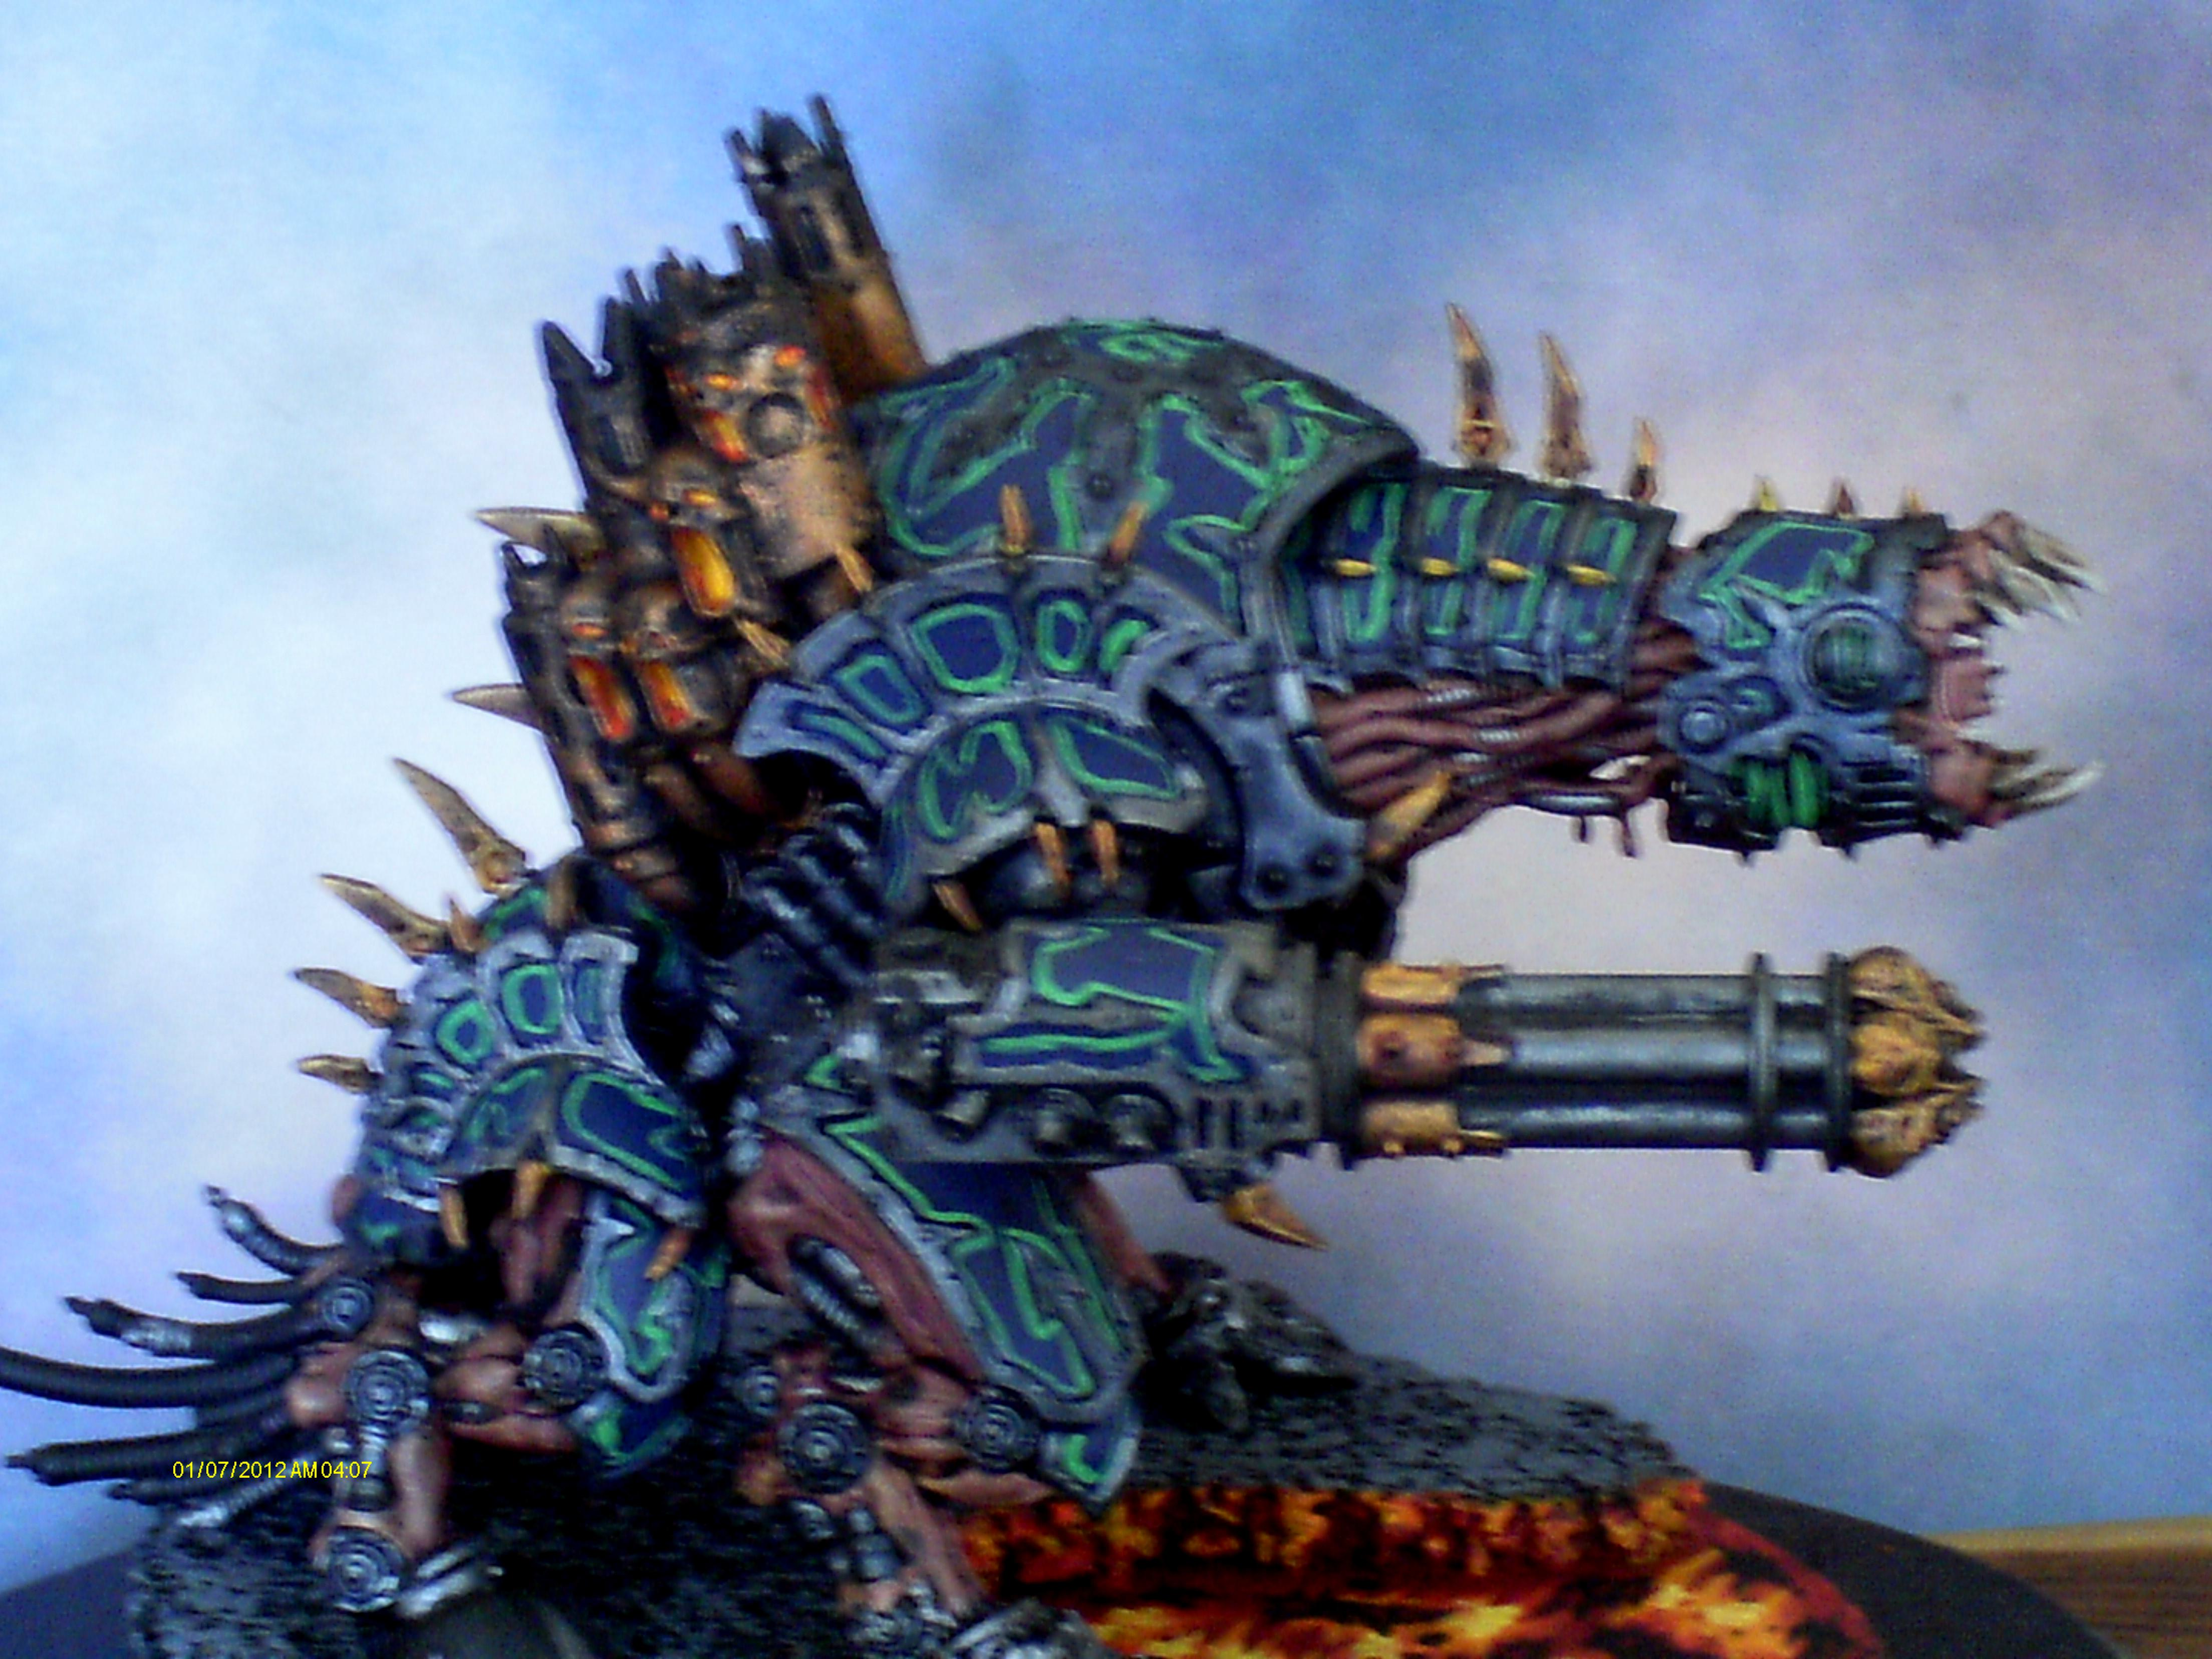 Chaos Forgefiend